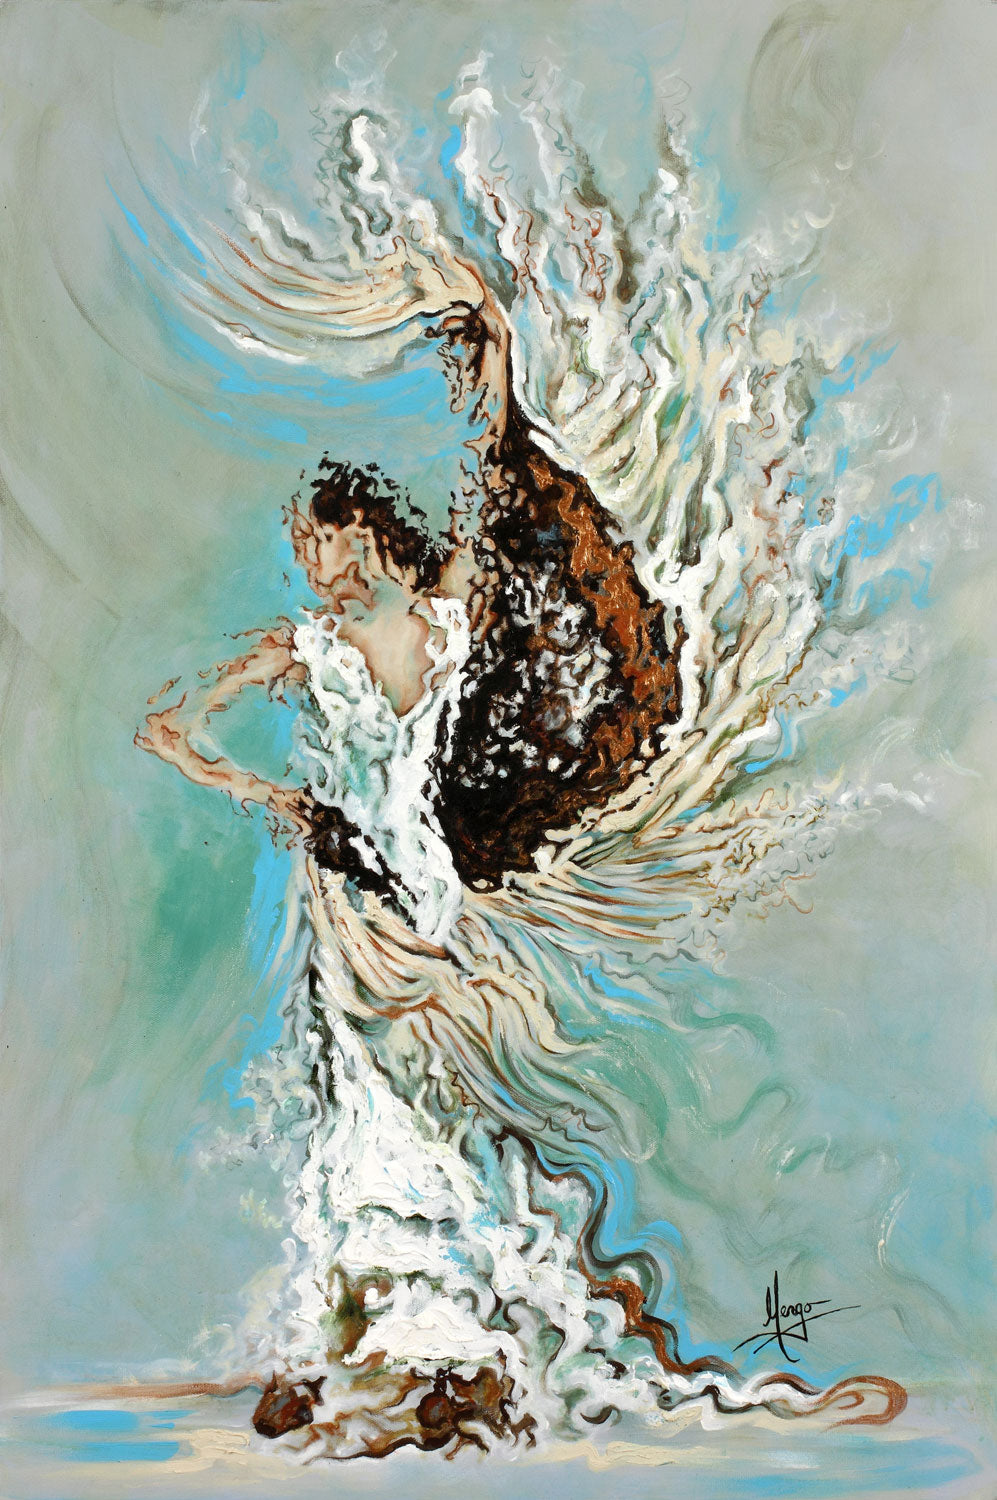 Abstract painting of a flamenco dancer with long white dress and mantel in aqua blue color